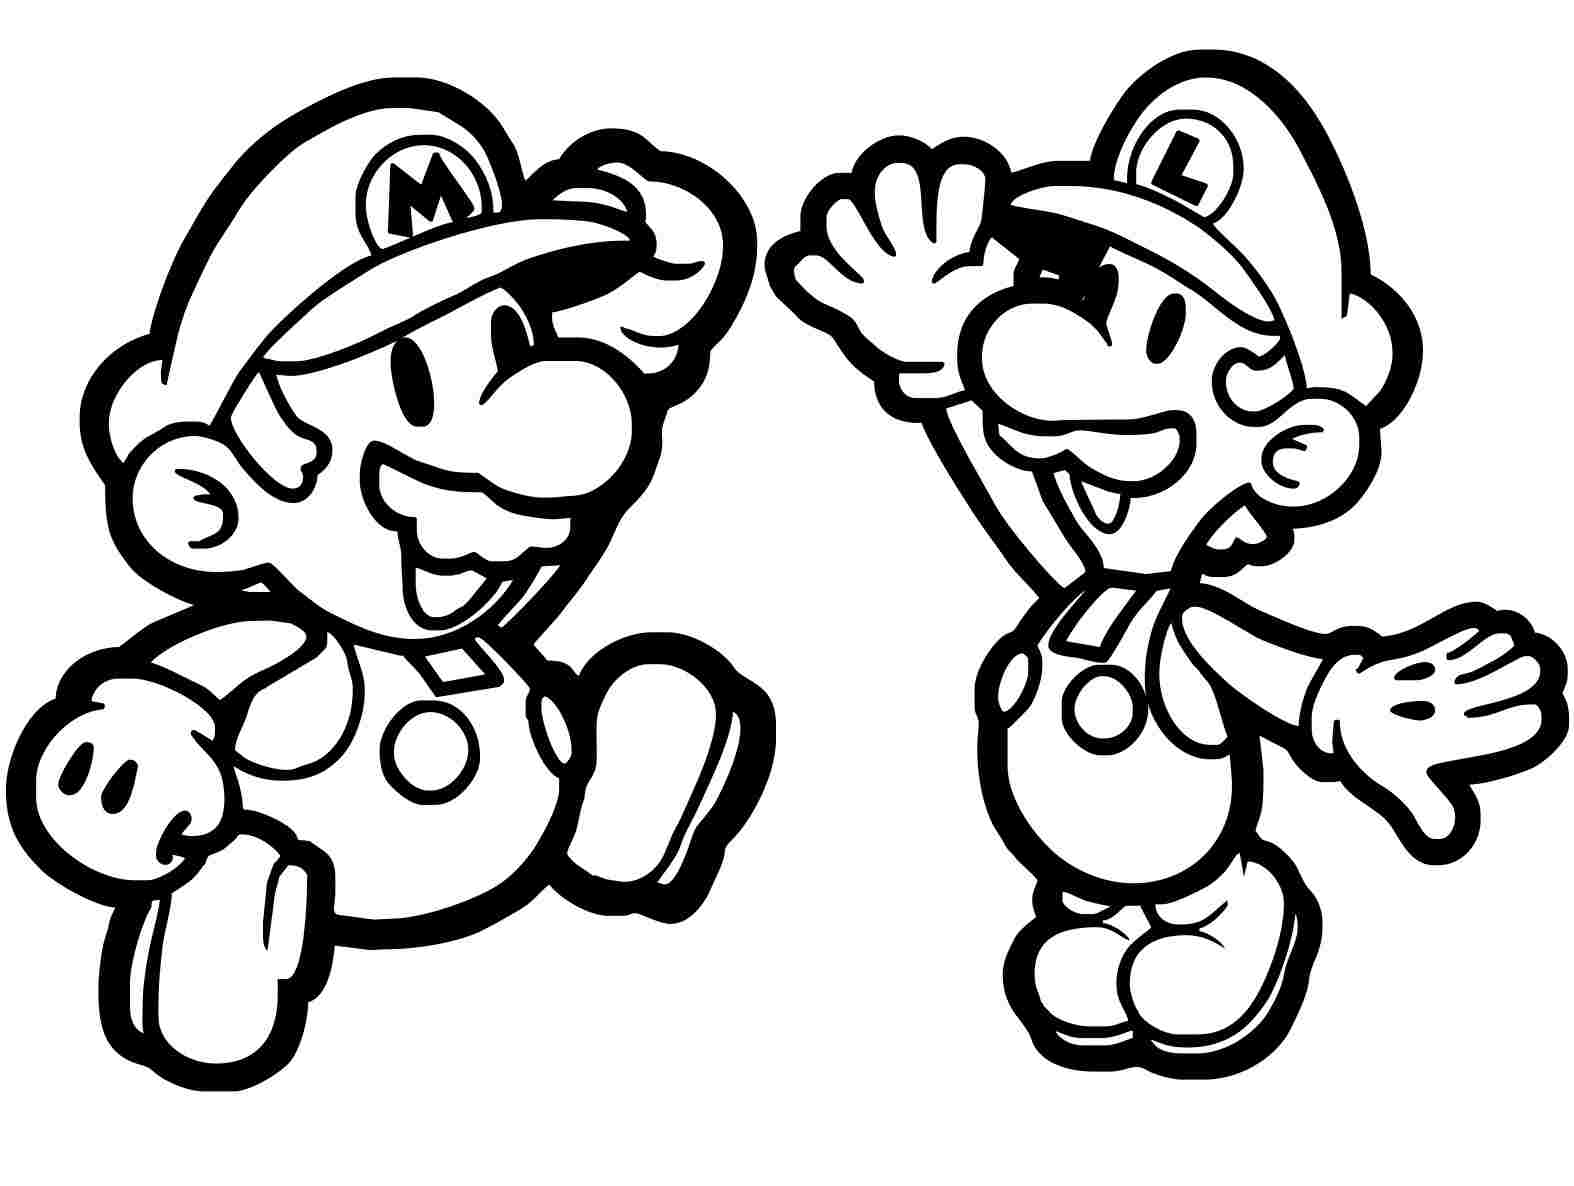 Chibi Mario and Luigi high-five Coloring Page